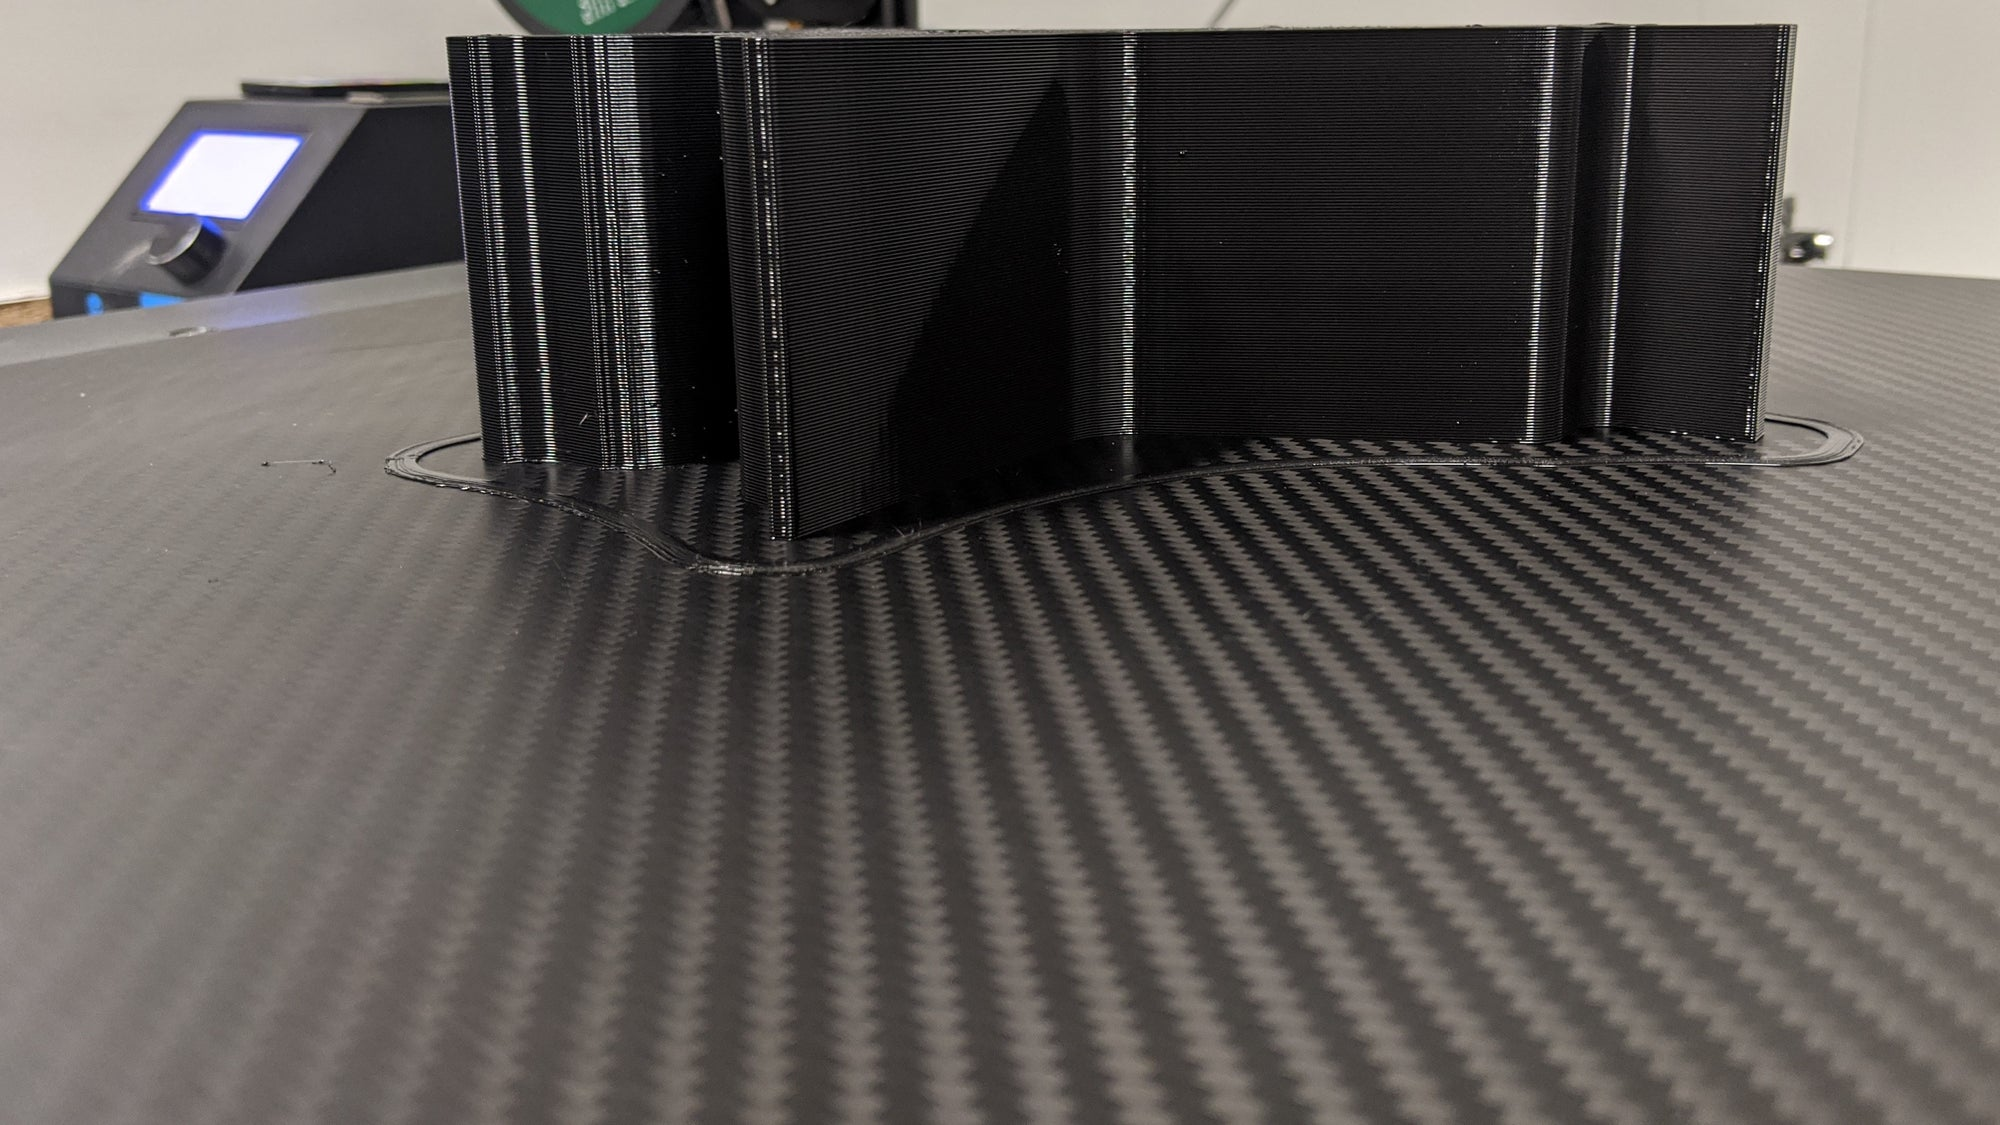 How do you clean the print bed?